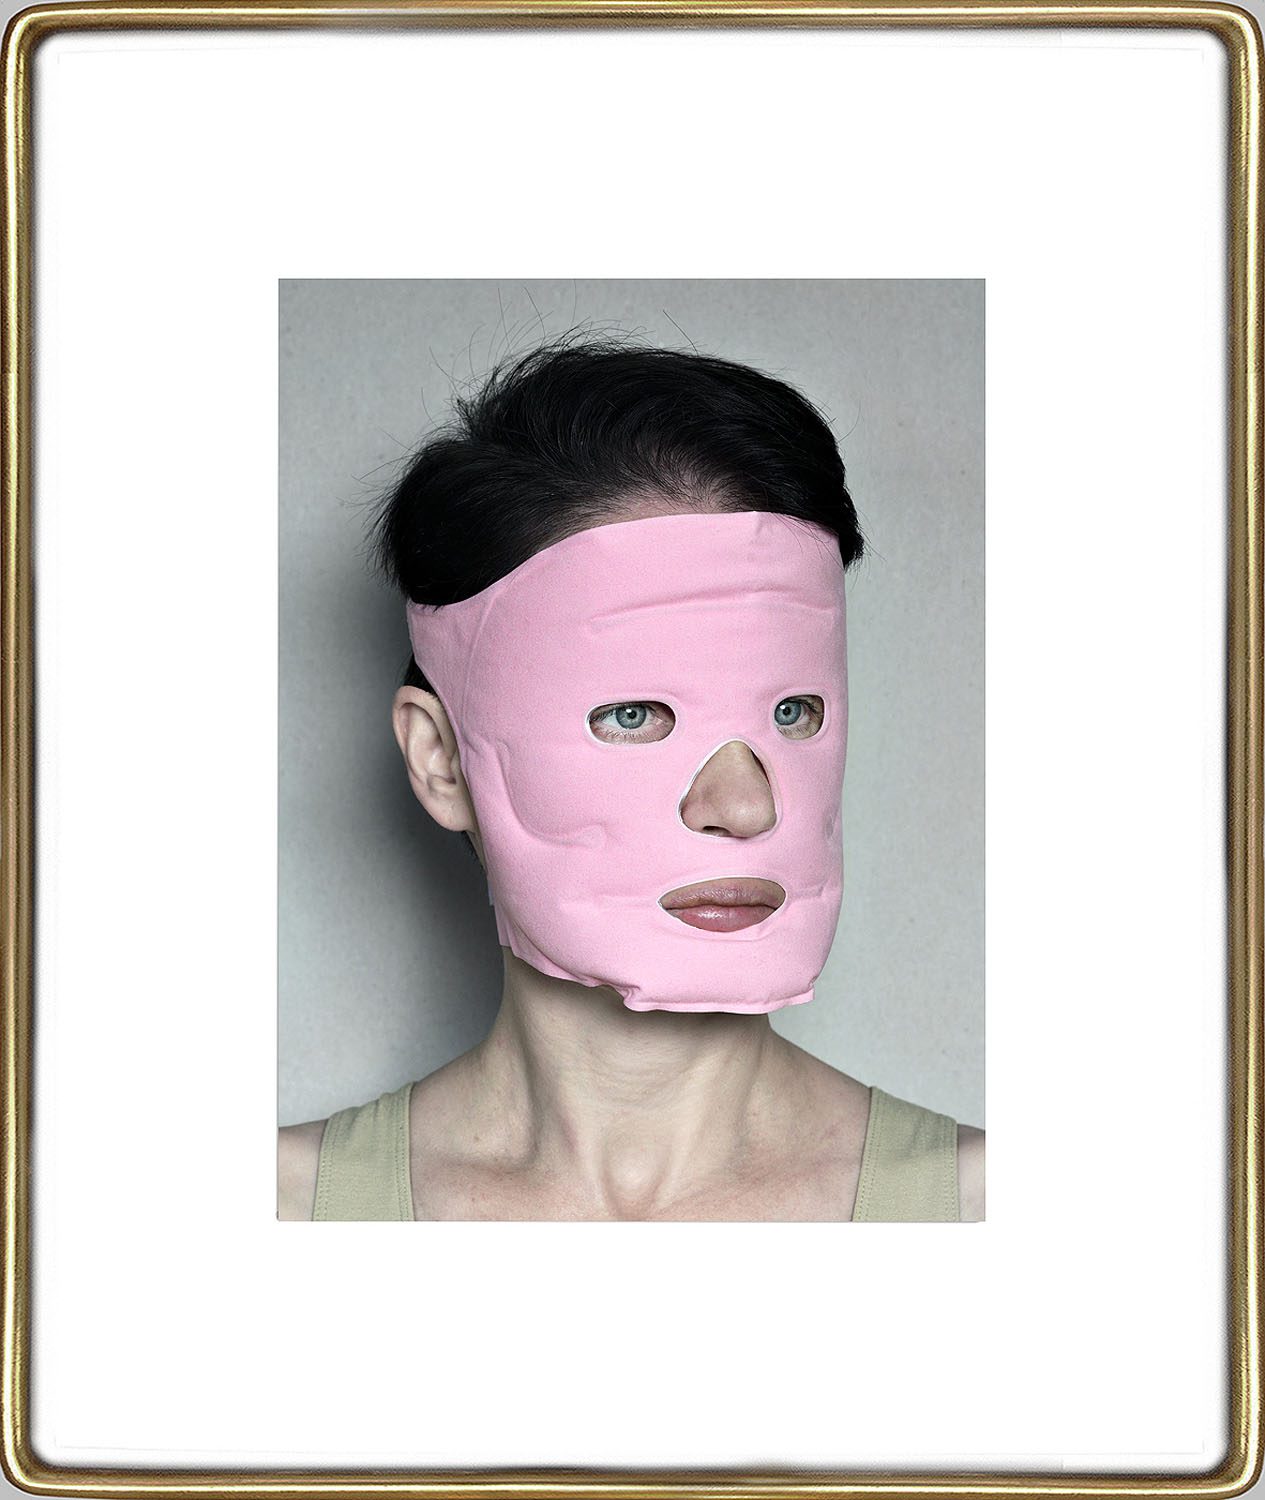 Aneta Grzeszykowska   Beauty Mask #11 , 2017  Pigment ink on cotton paper  16.93 x 12.40 inches  23.82 x 19.23 inches (framed)  Edition of 3 + I A.P.